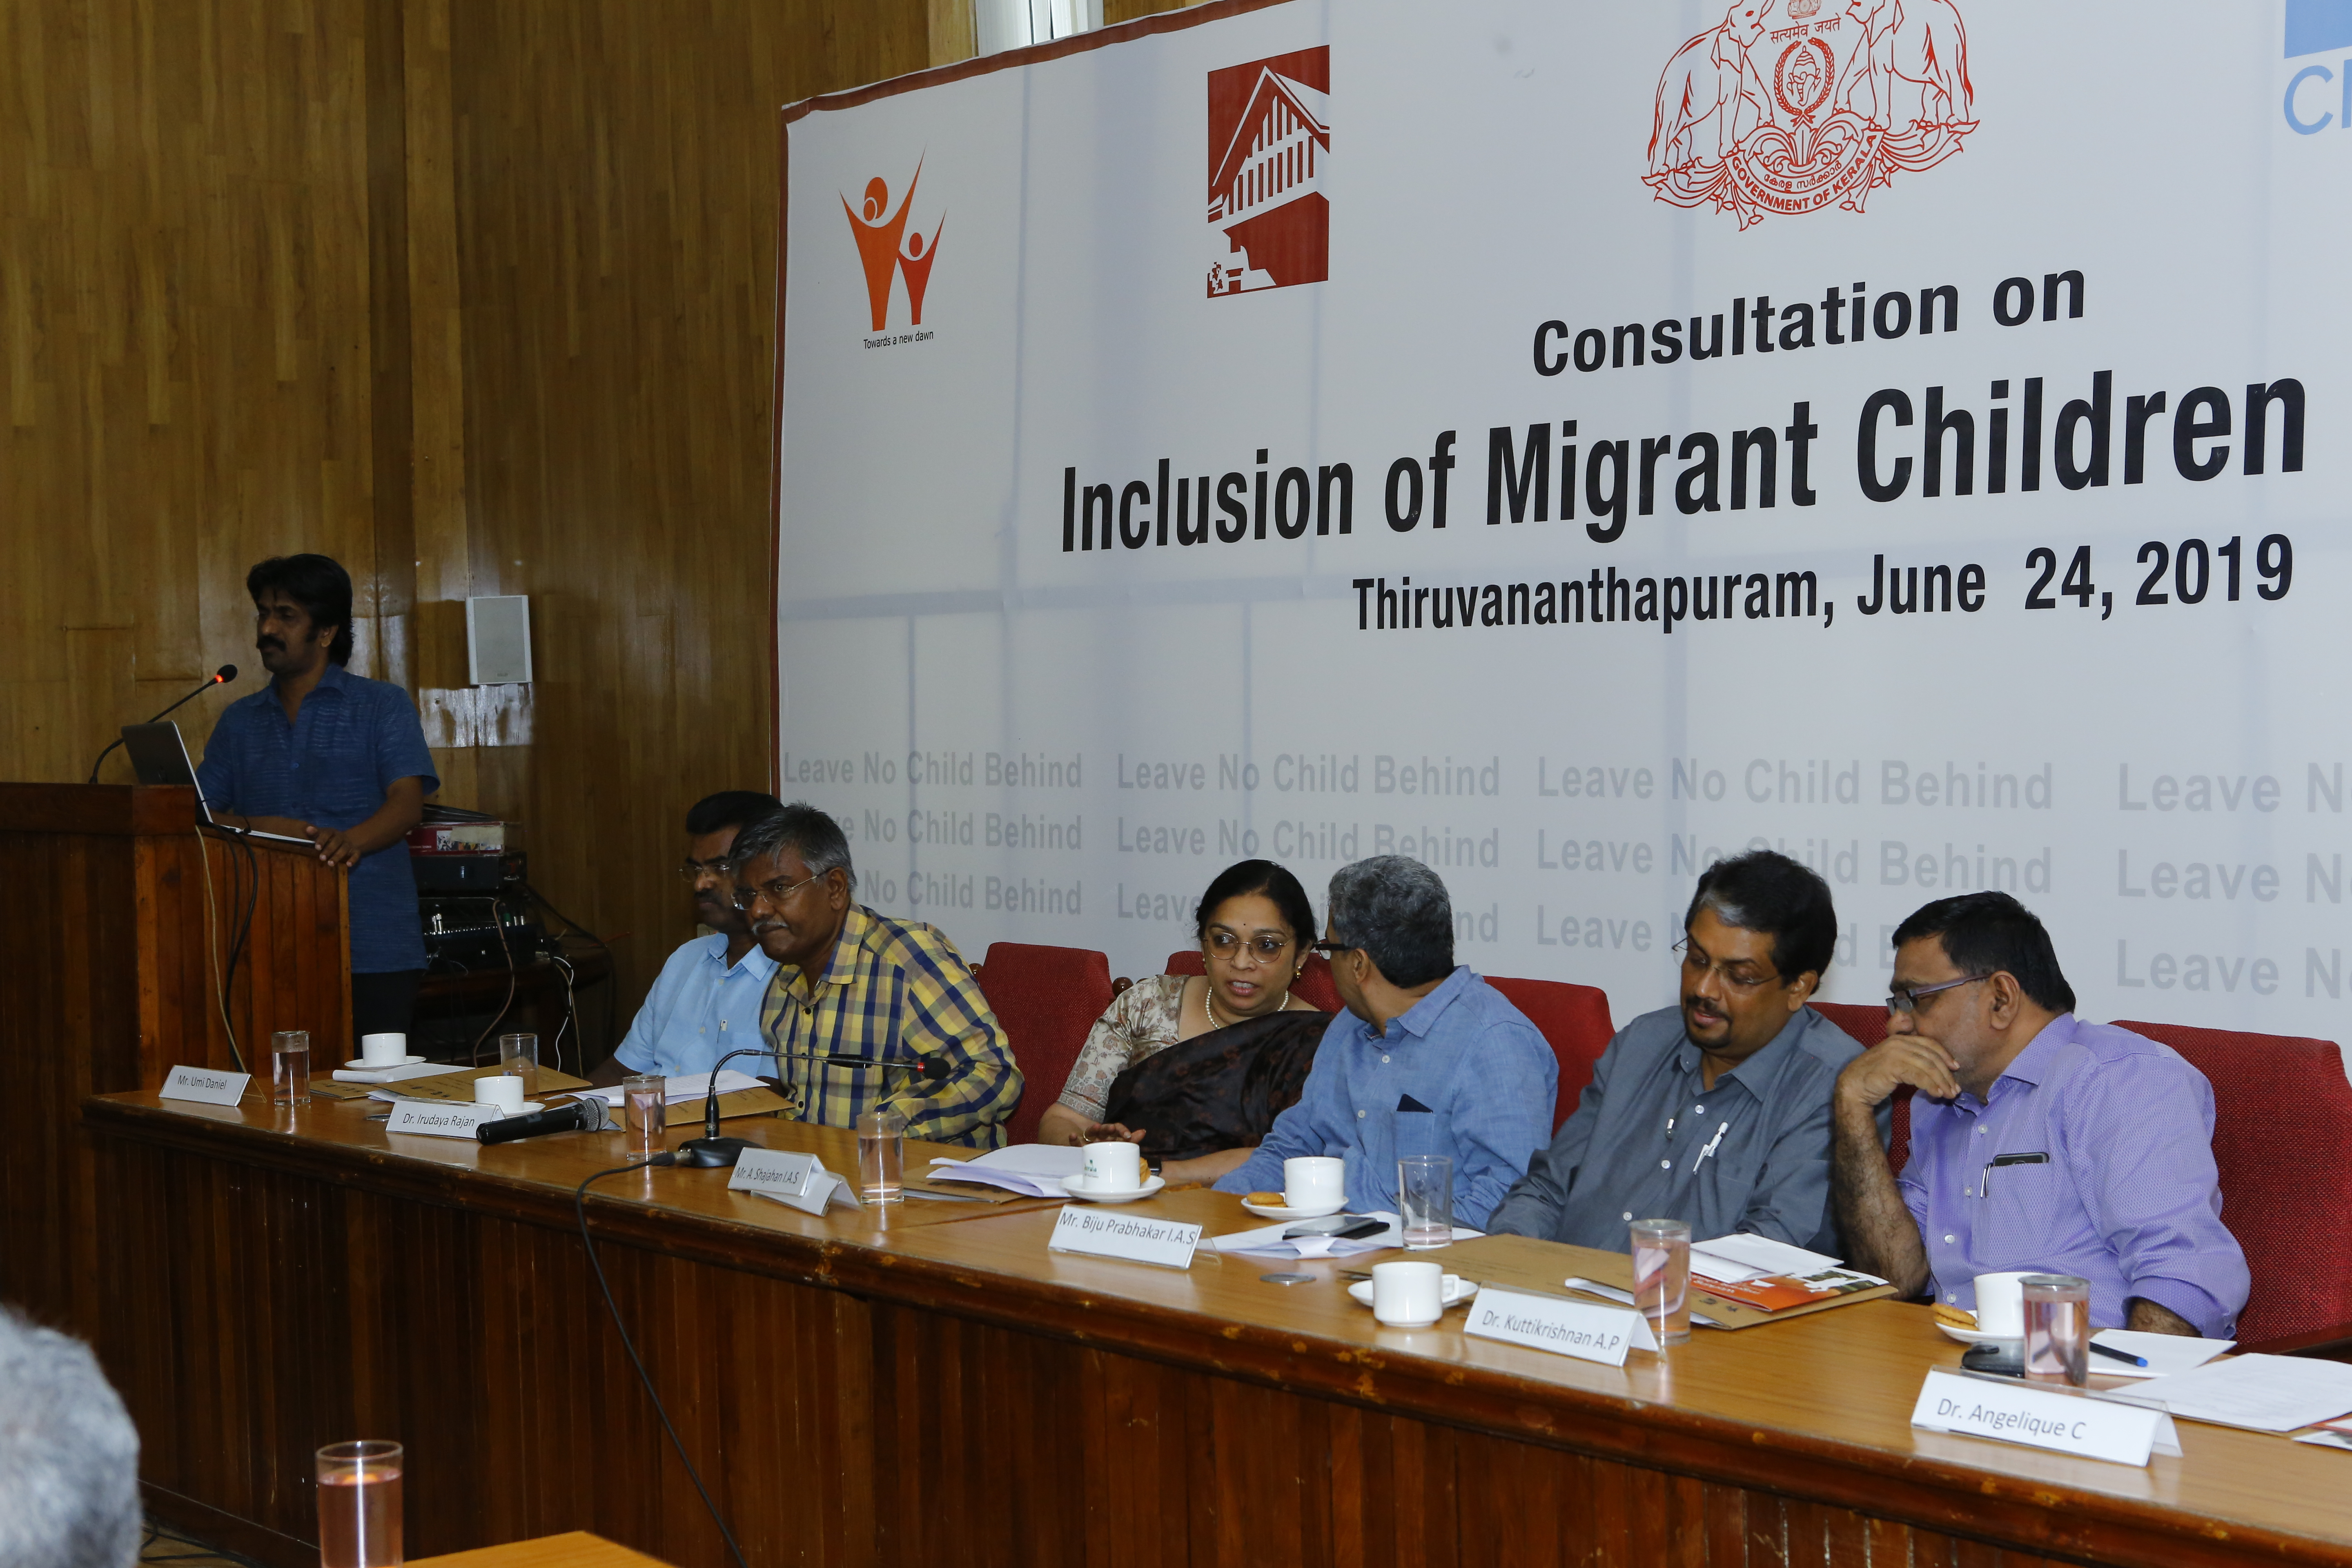 Angelique Chettiparamb gives opening remarks at Consultation on Inclusion of Migrant Children